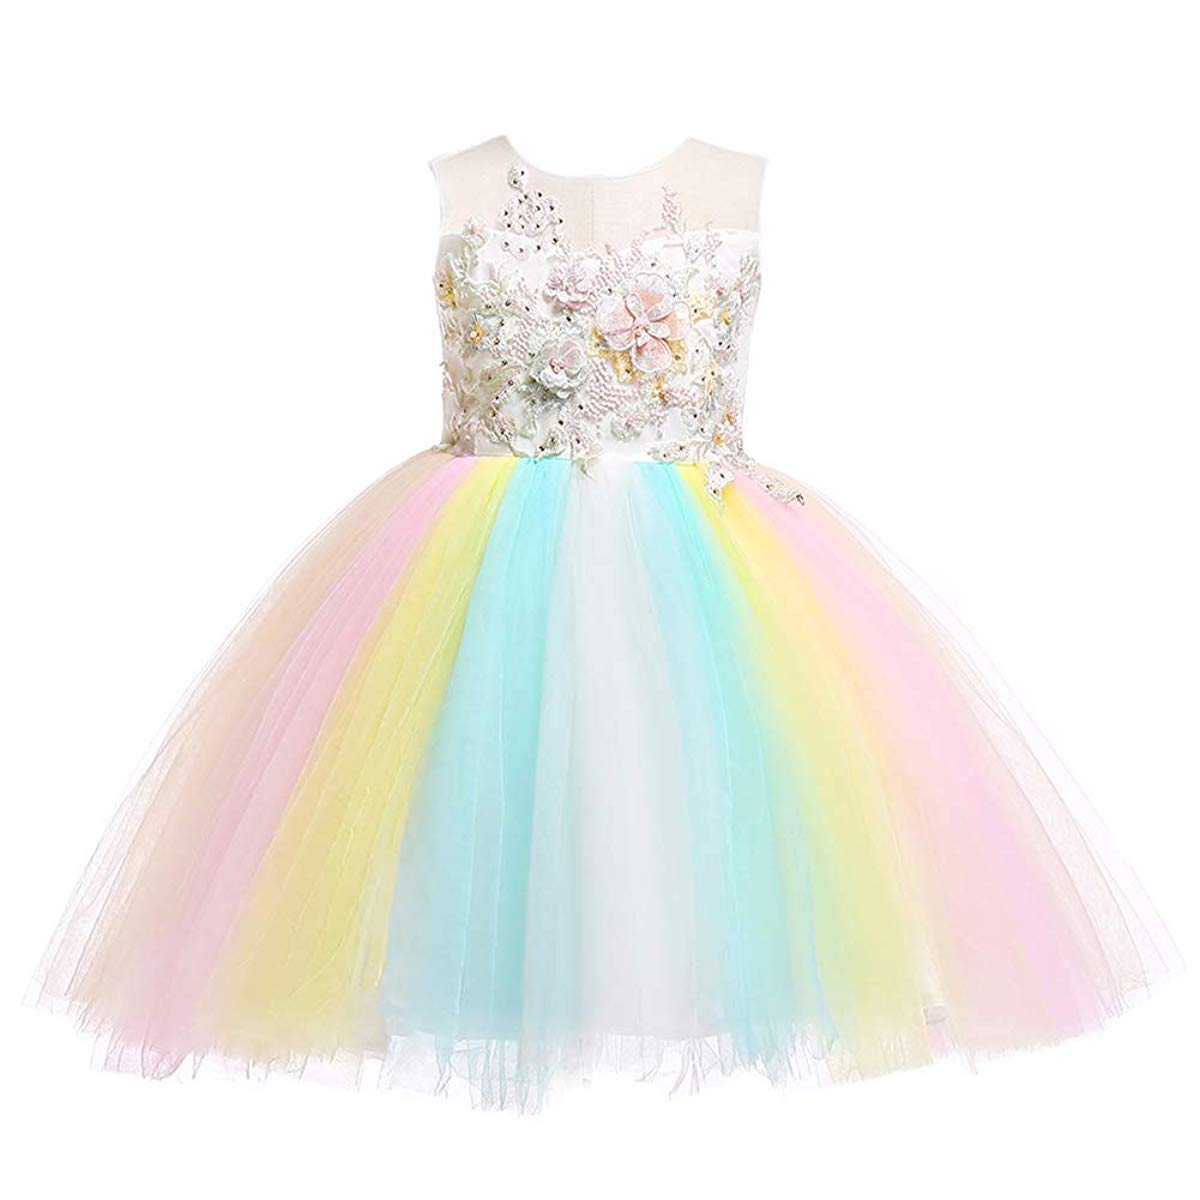 10a8609a5d214 Weileenice 2-14T Girls Flower Dress Rainbow Tulle 3D Embroidery Beading  Dresses